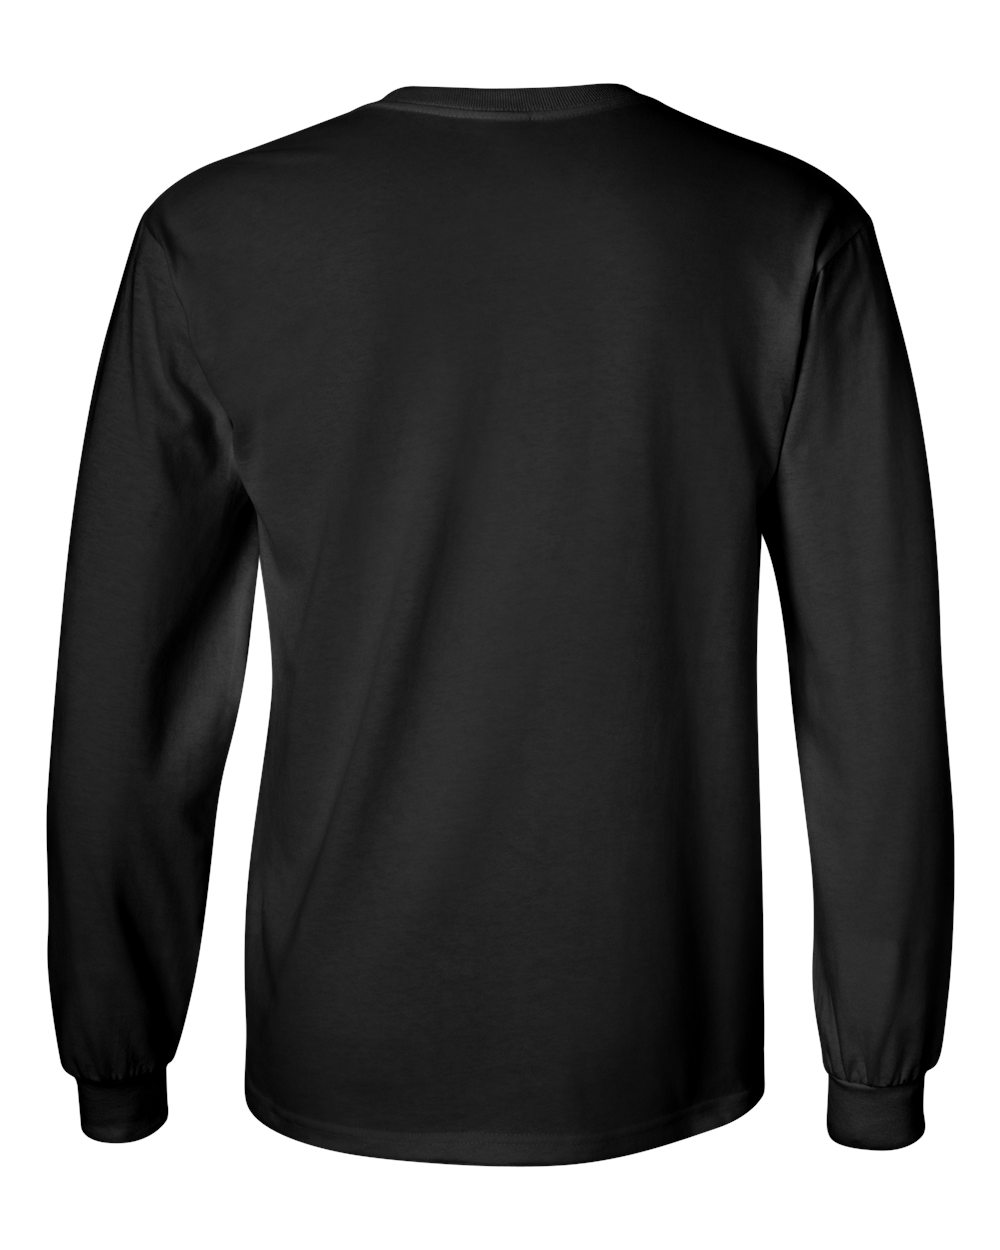 Gildan-Men-039-s-Ultra-Cotton-6-oz-Long-Sleeve-T-Shirt-G240-S-5XL thumbnail 8